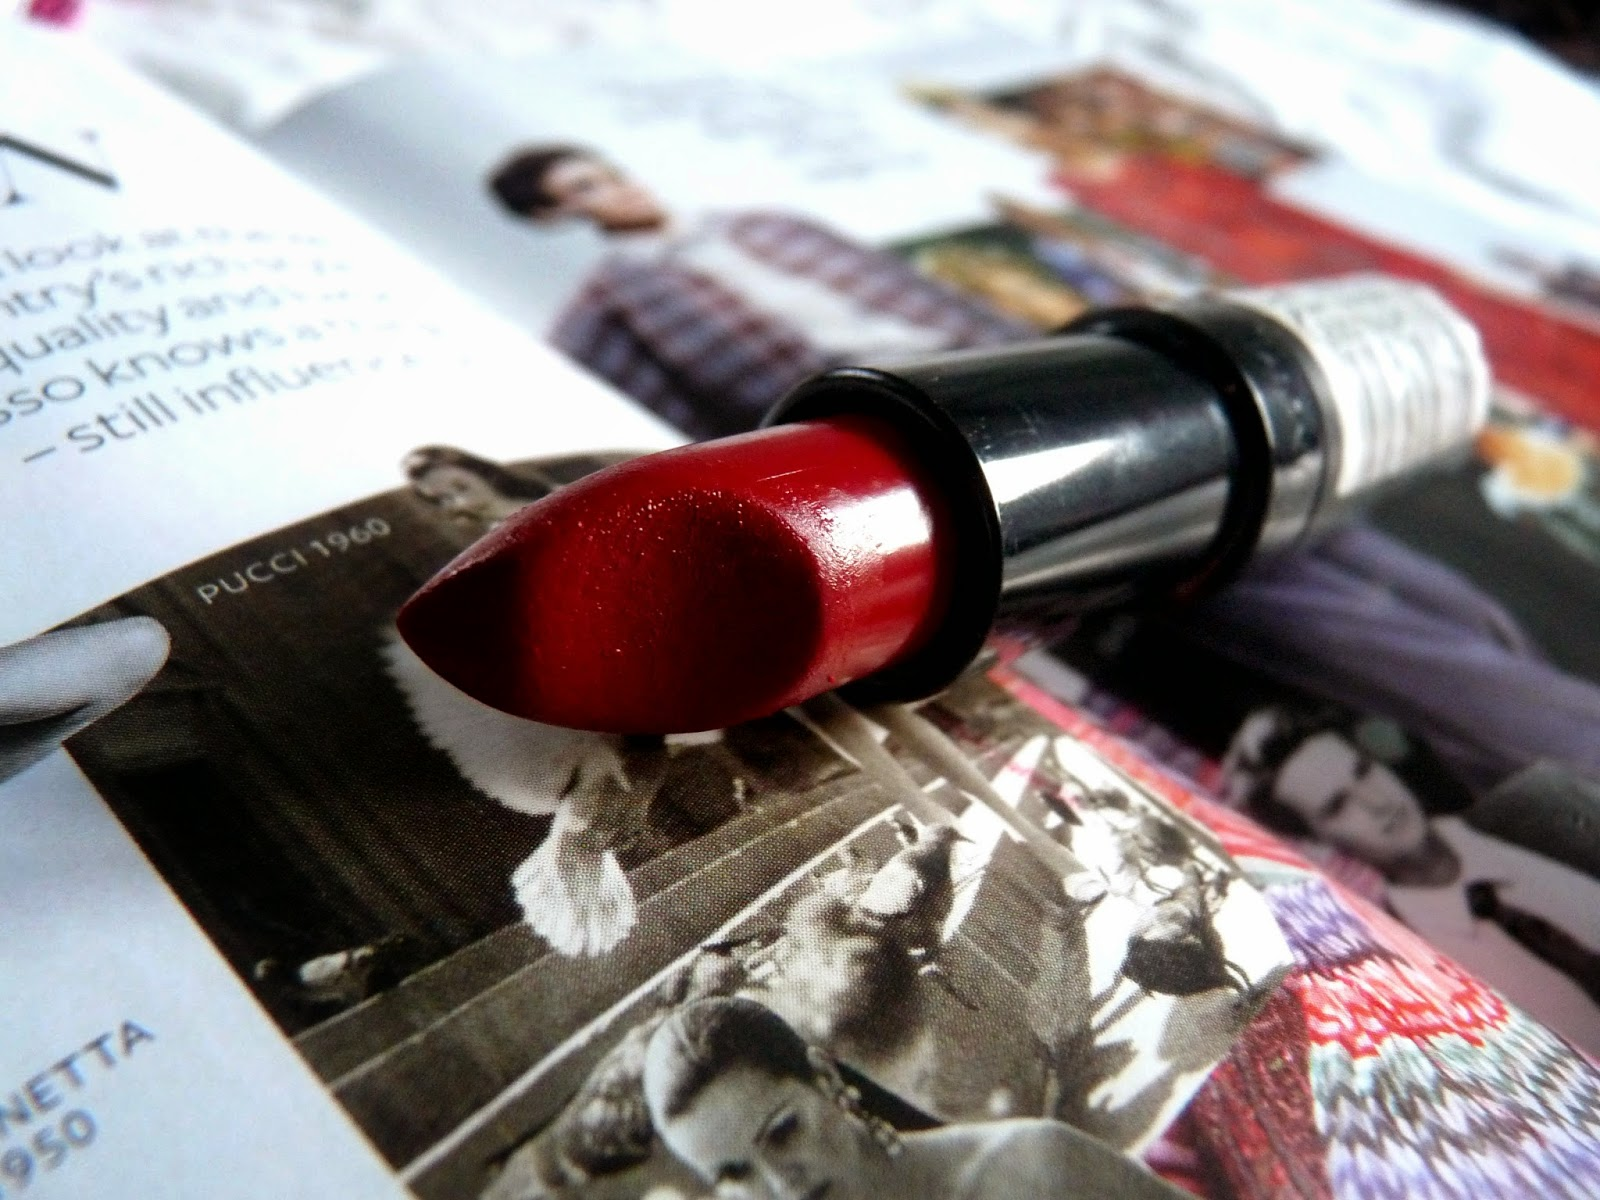 red lipstick beauty makeup rimmel london kate moss youwishyou